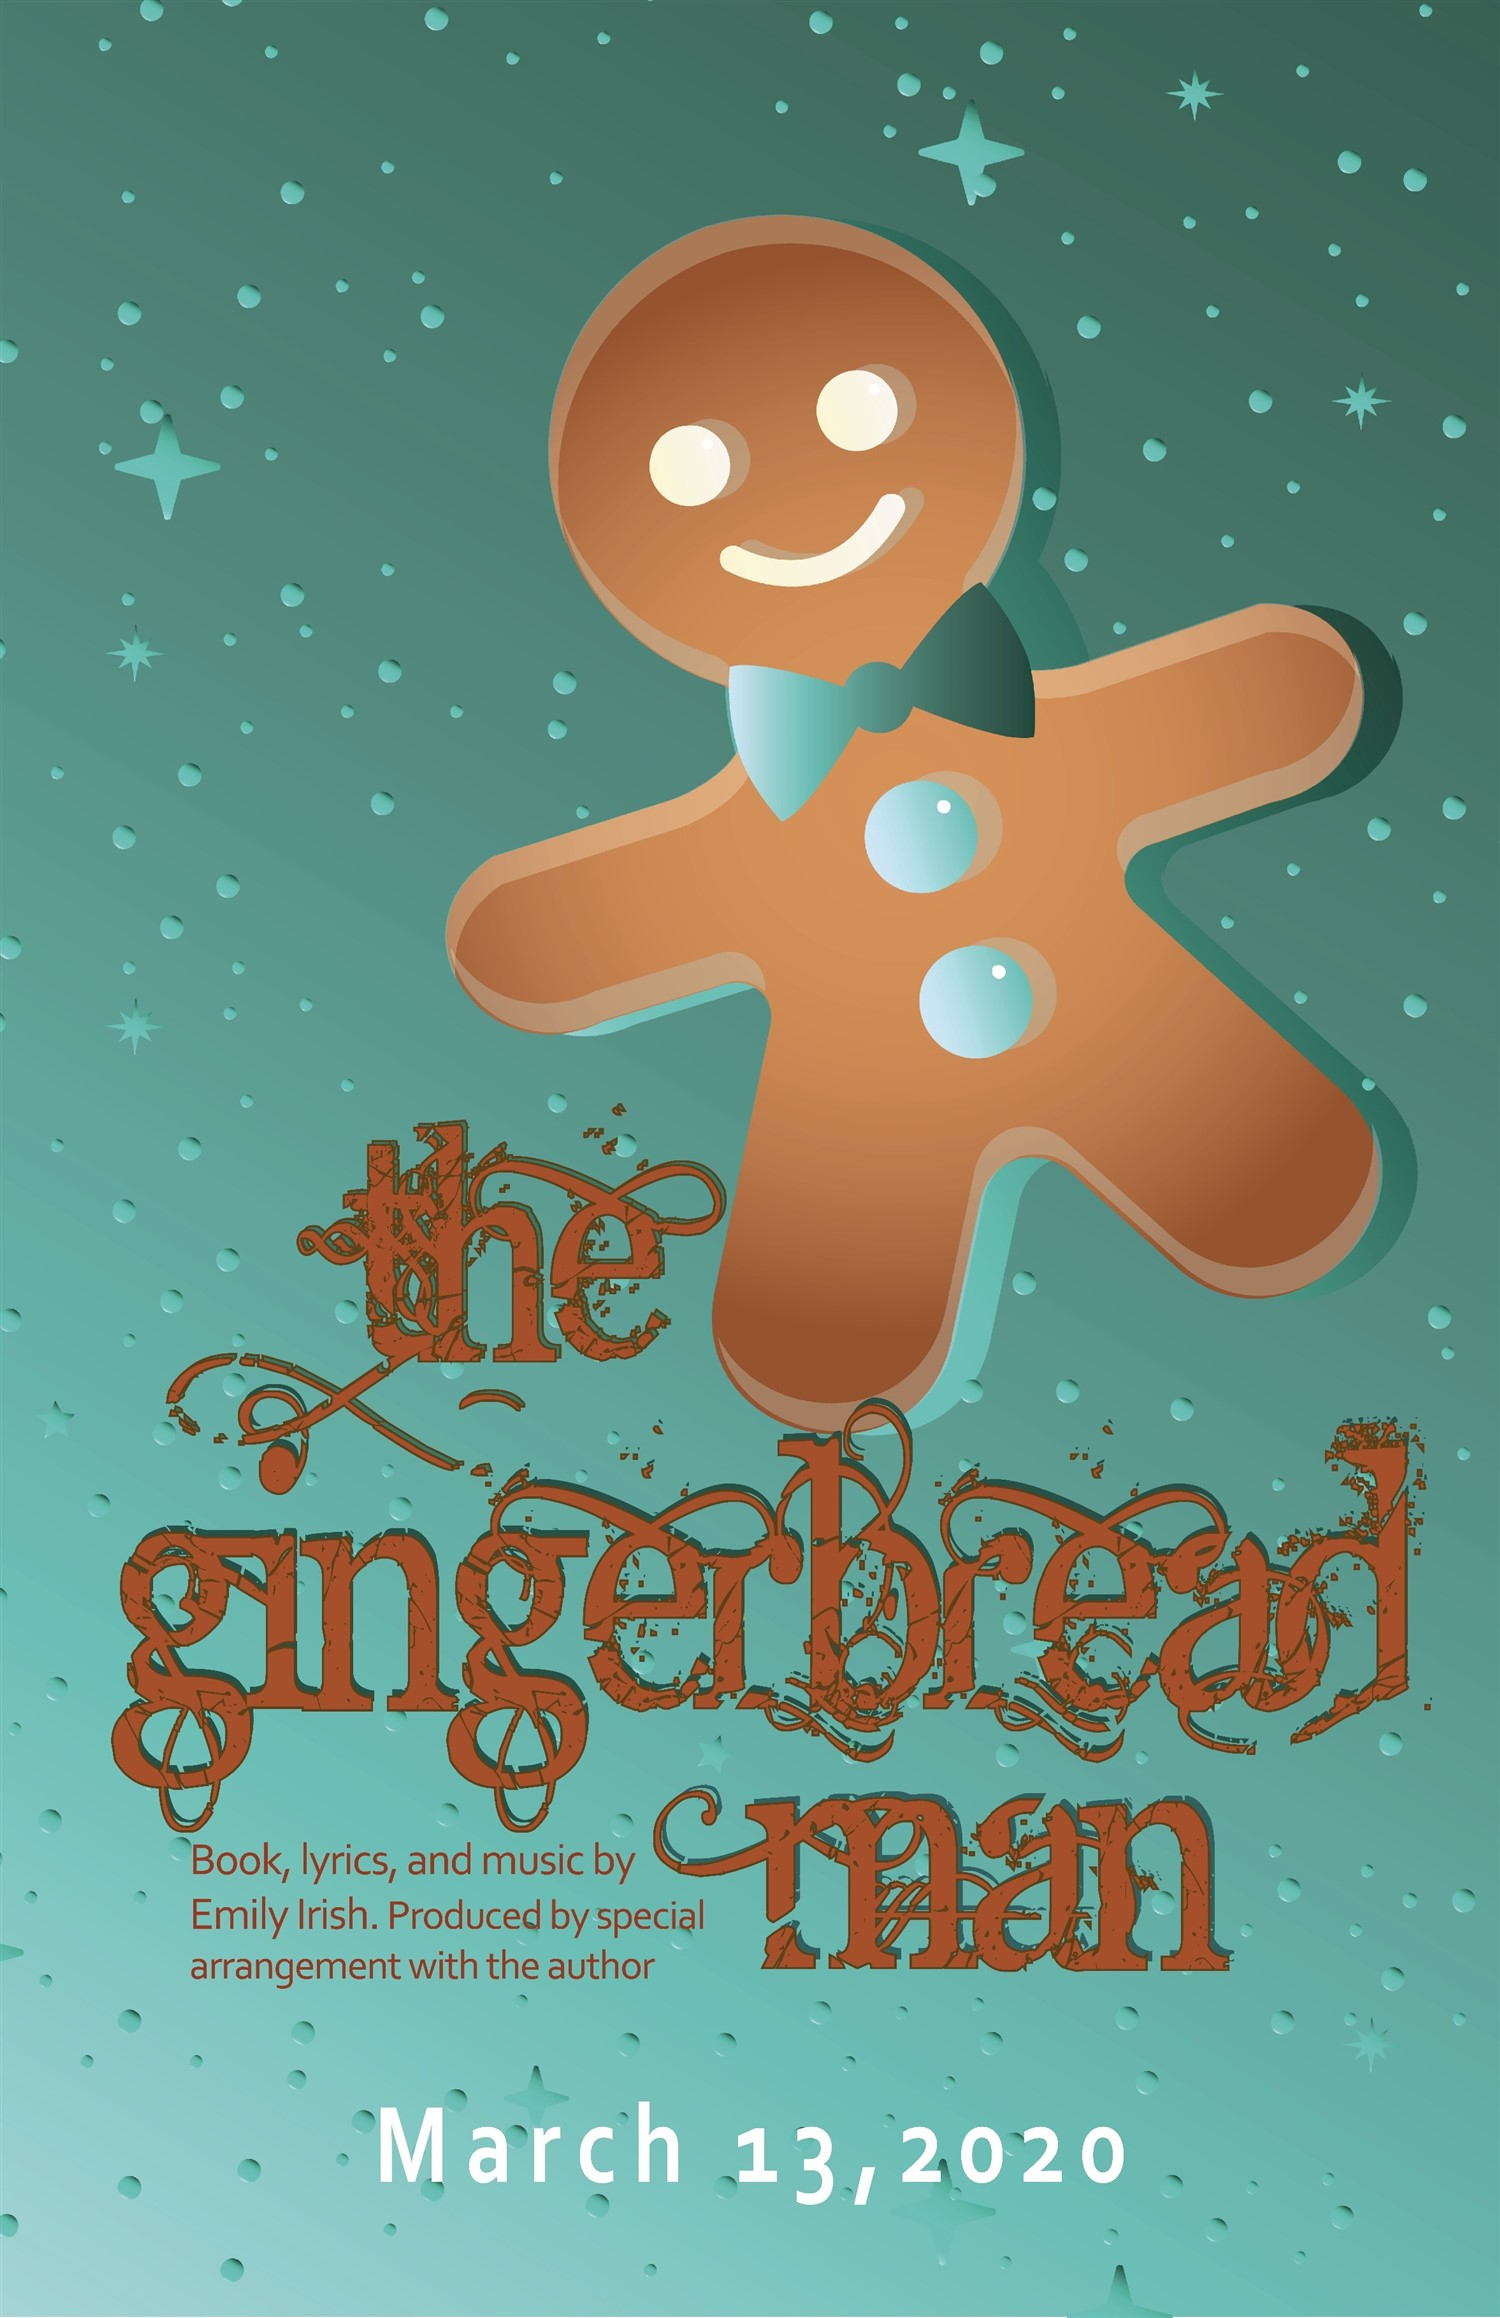 The Gingerbread Man Friday, March 13, 2020 @ 7:00 pm on Mar 13, 19:00@Spiritual Twist Productions - Pick a seat, Buy tickets and Get information on Spiritual Twist Productions tickets.spiritualtwist.com